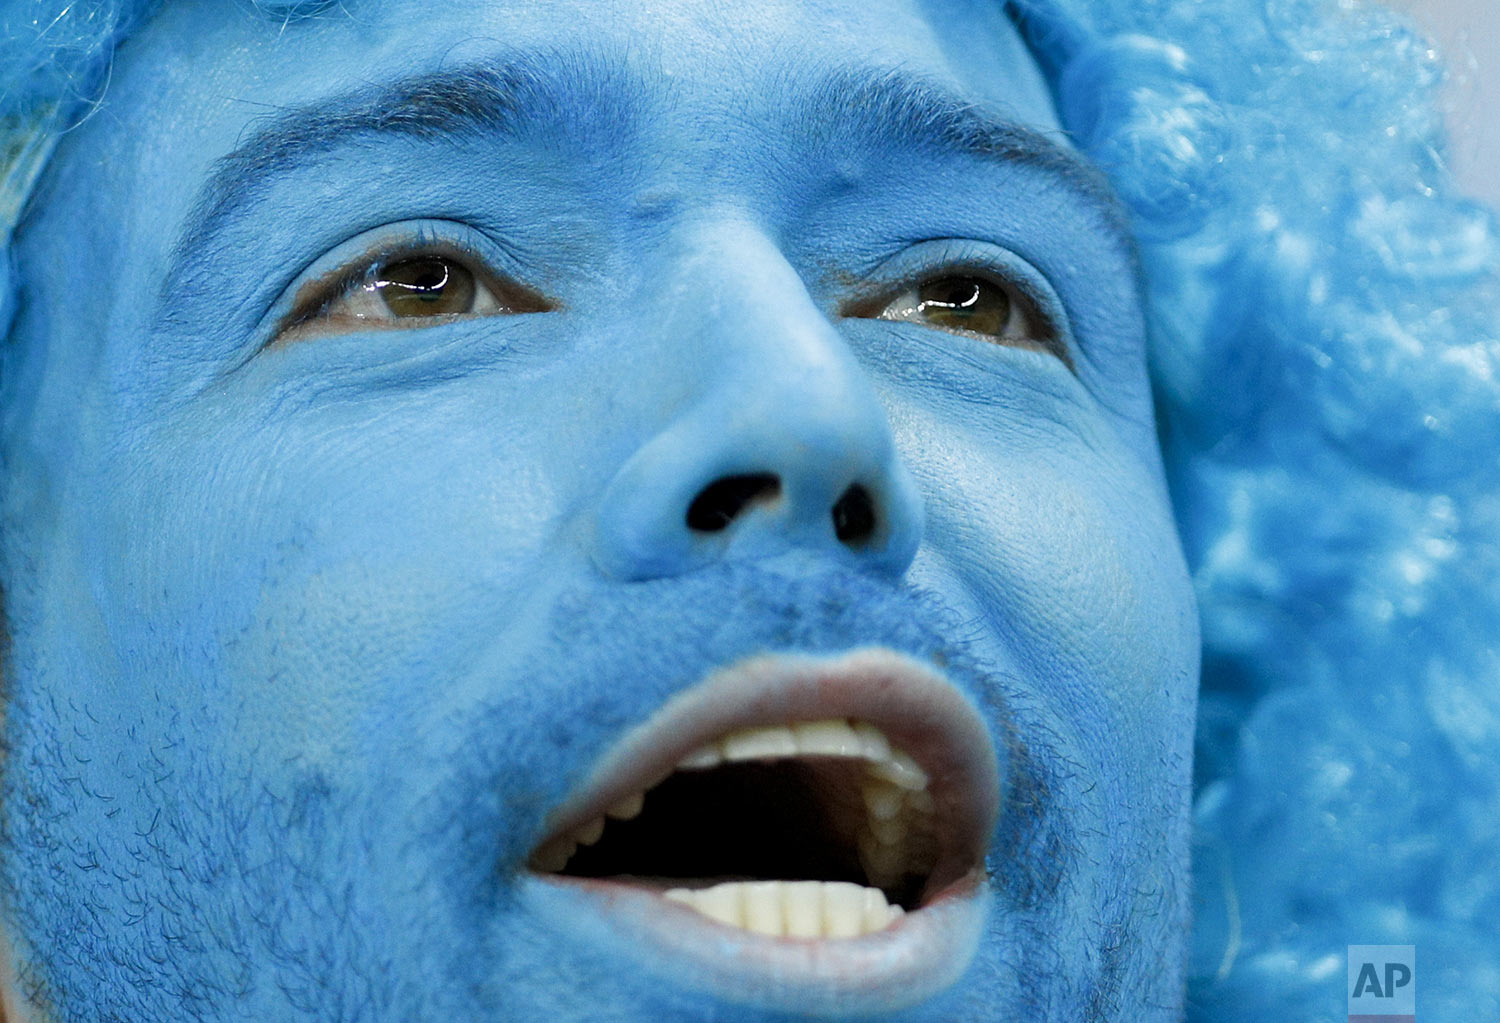 An Uruguay fan covered in blue cheers prior to his team's Copa America Group C soccer match against Ecuador at  Mineirao stadium in Belo Horizonte, Brazil, Sunday, June 16, 2019. (AP Photo/Victor R. Caivano)